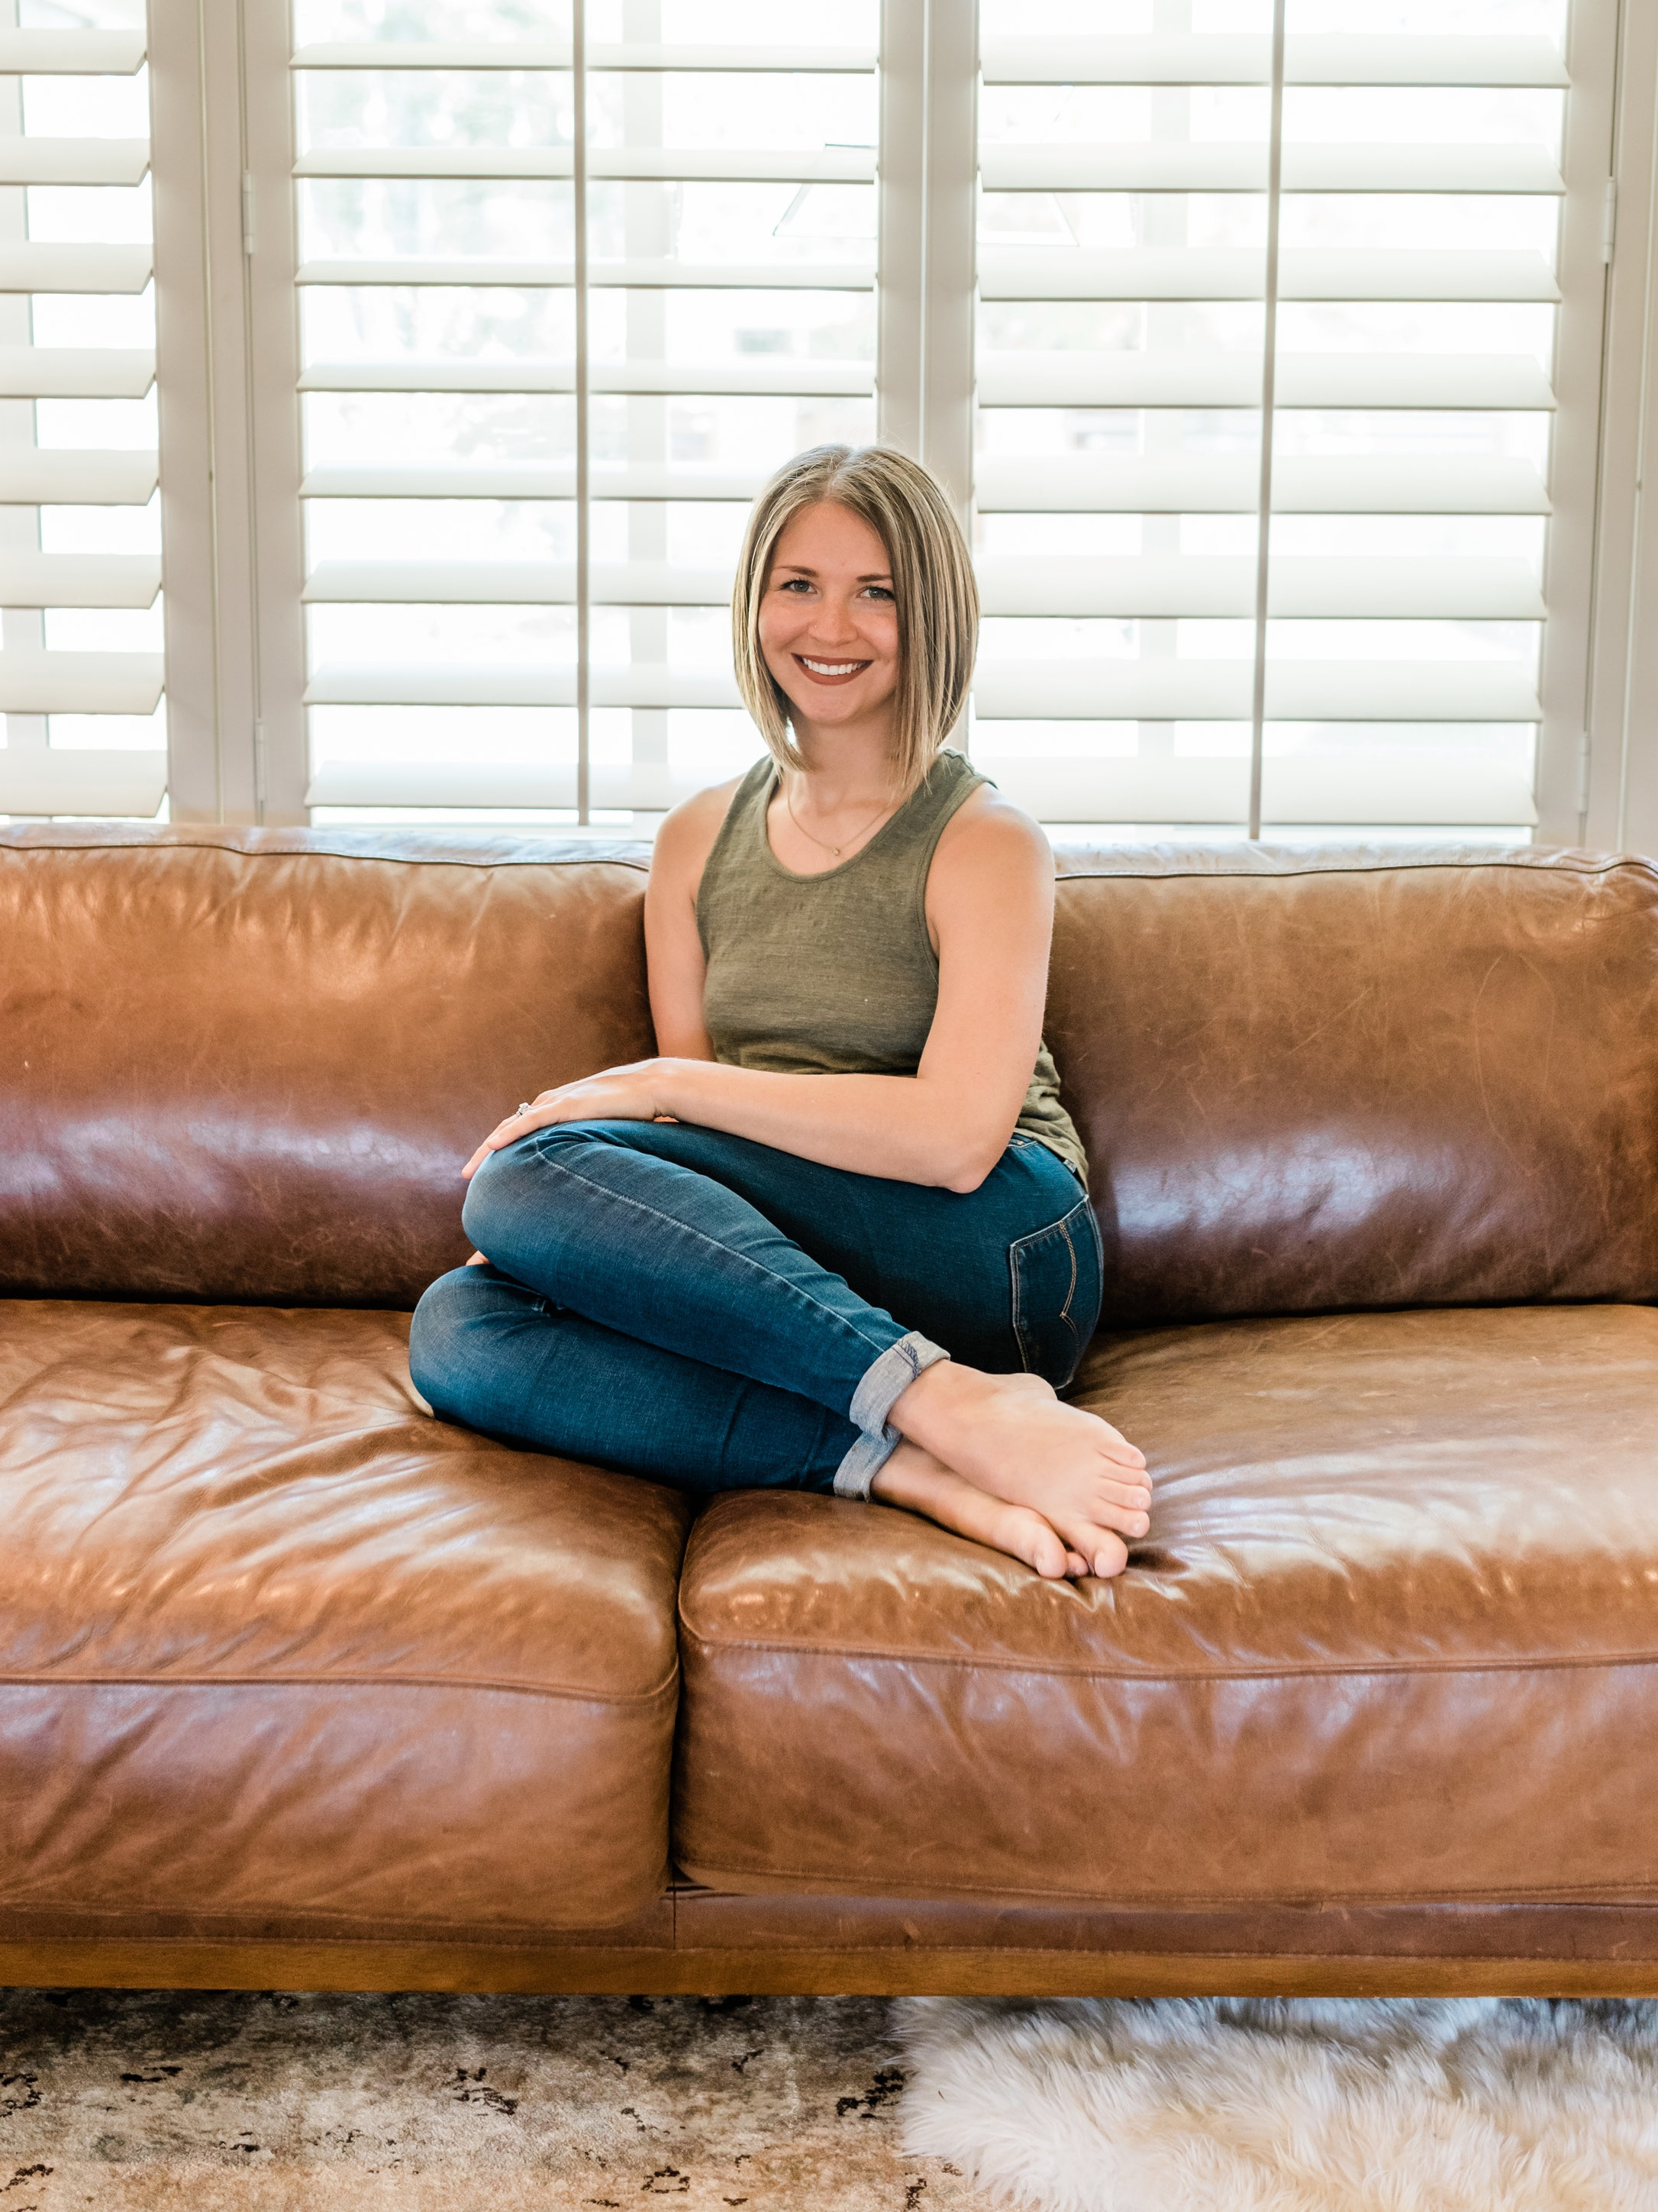 Hi, I'm Kiersten - I'm a Pre- and Perinatal Educator, Doula and I practice Biodynamic Craniosacral Therapy. I support families through the transition into parenthood, pre-conception through postpartum. Read more >>